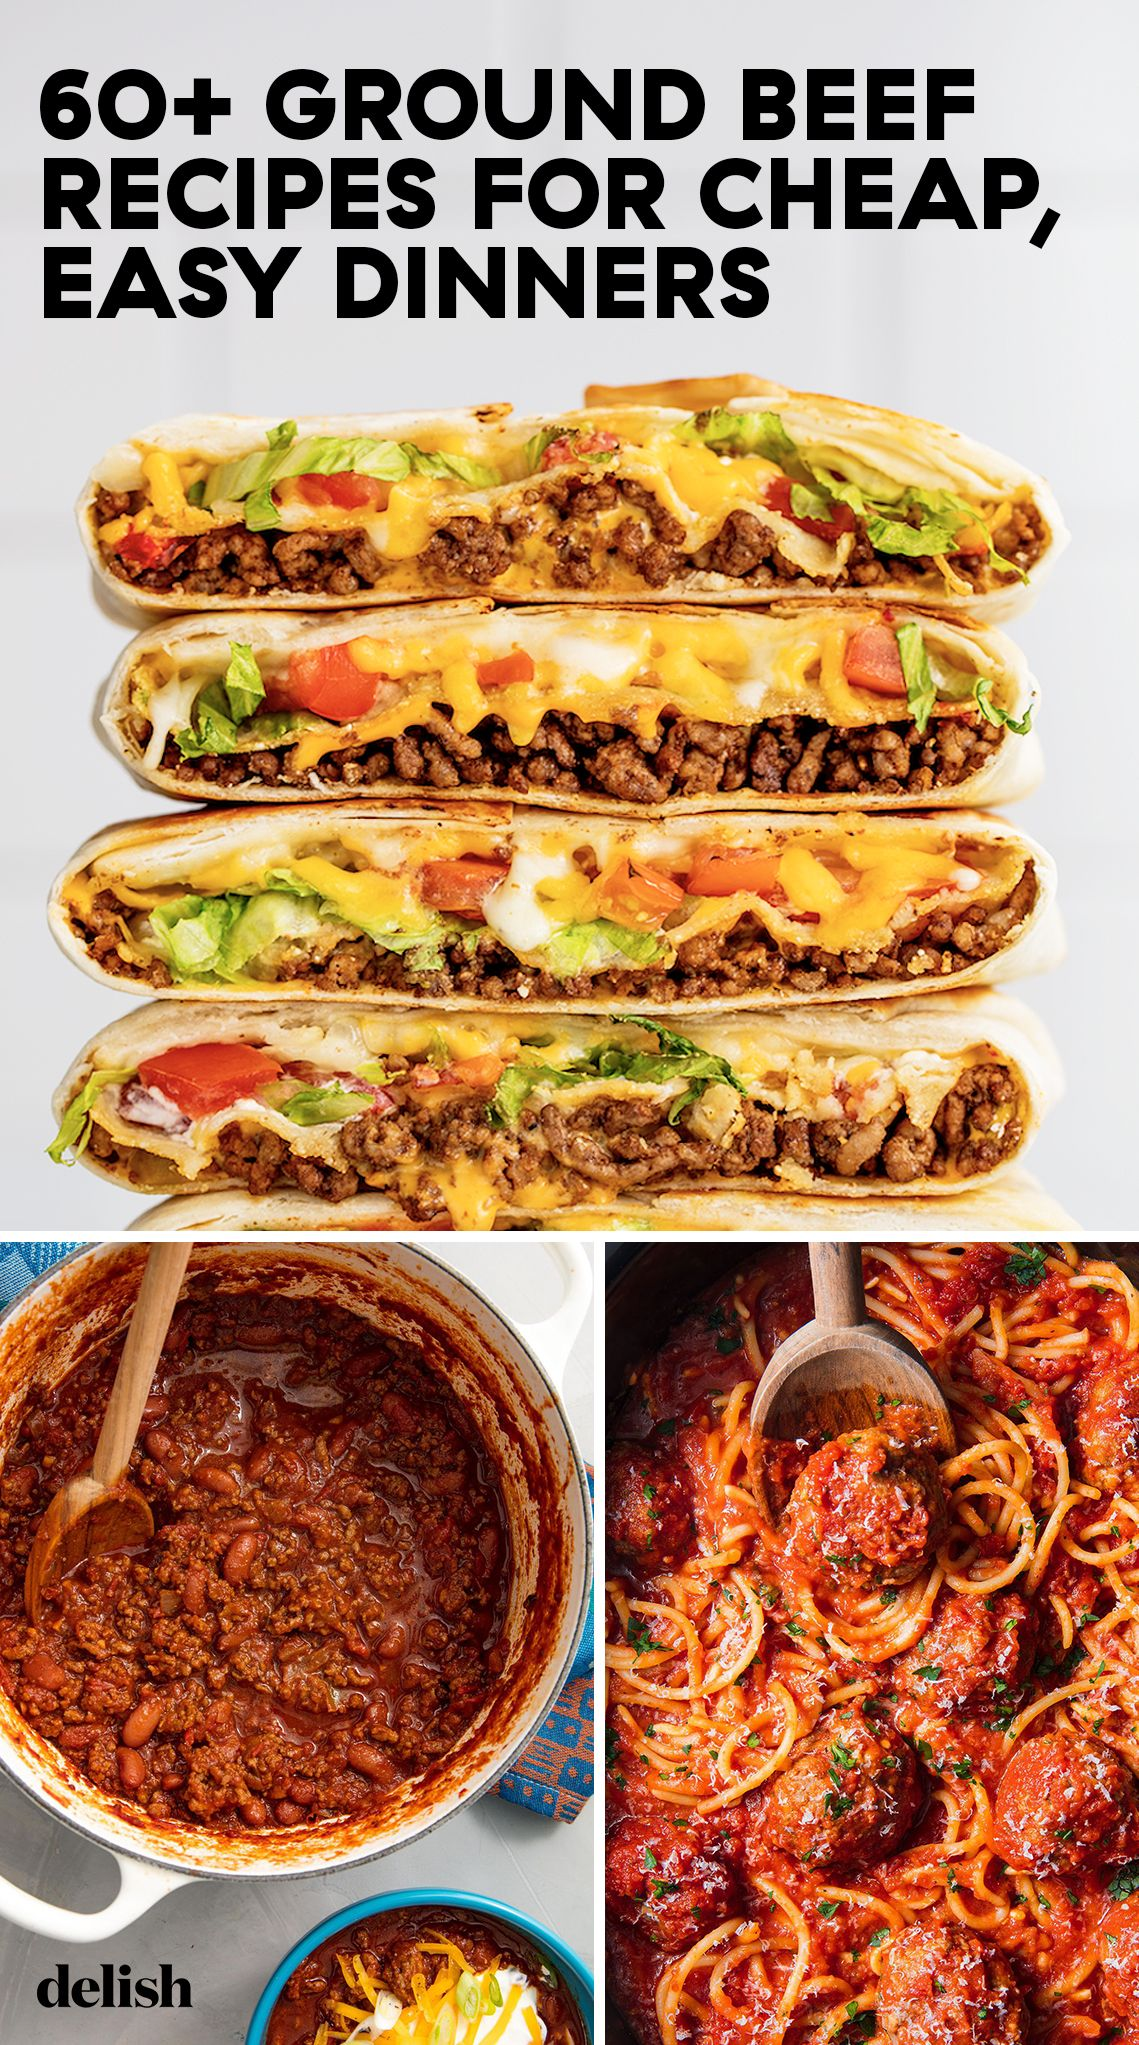 60+ easy ground beef recipes - what to make with ground beef—-delish